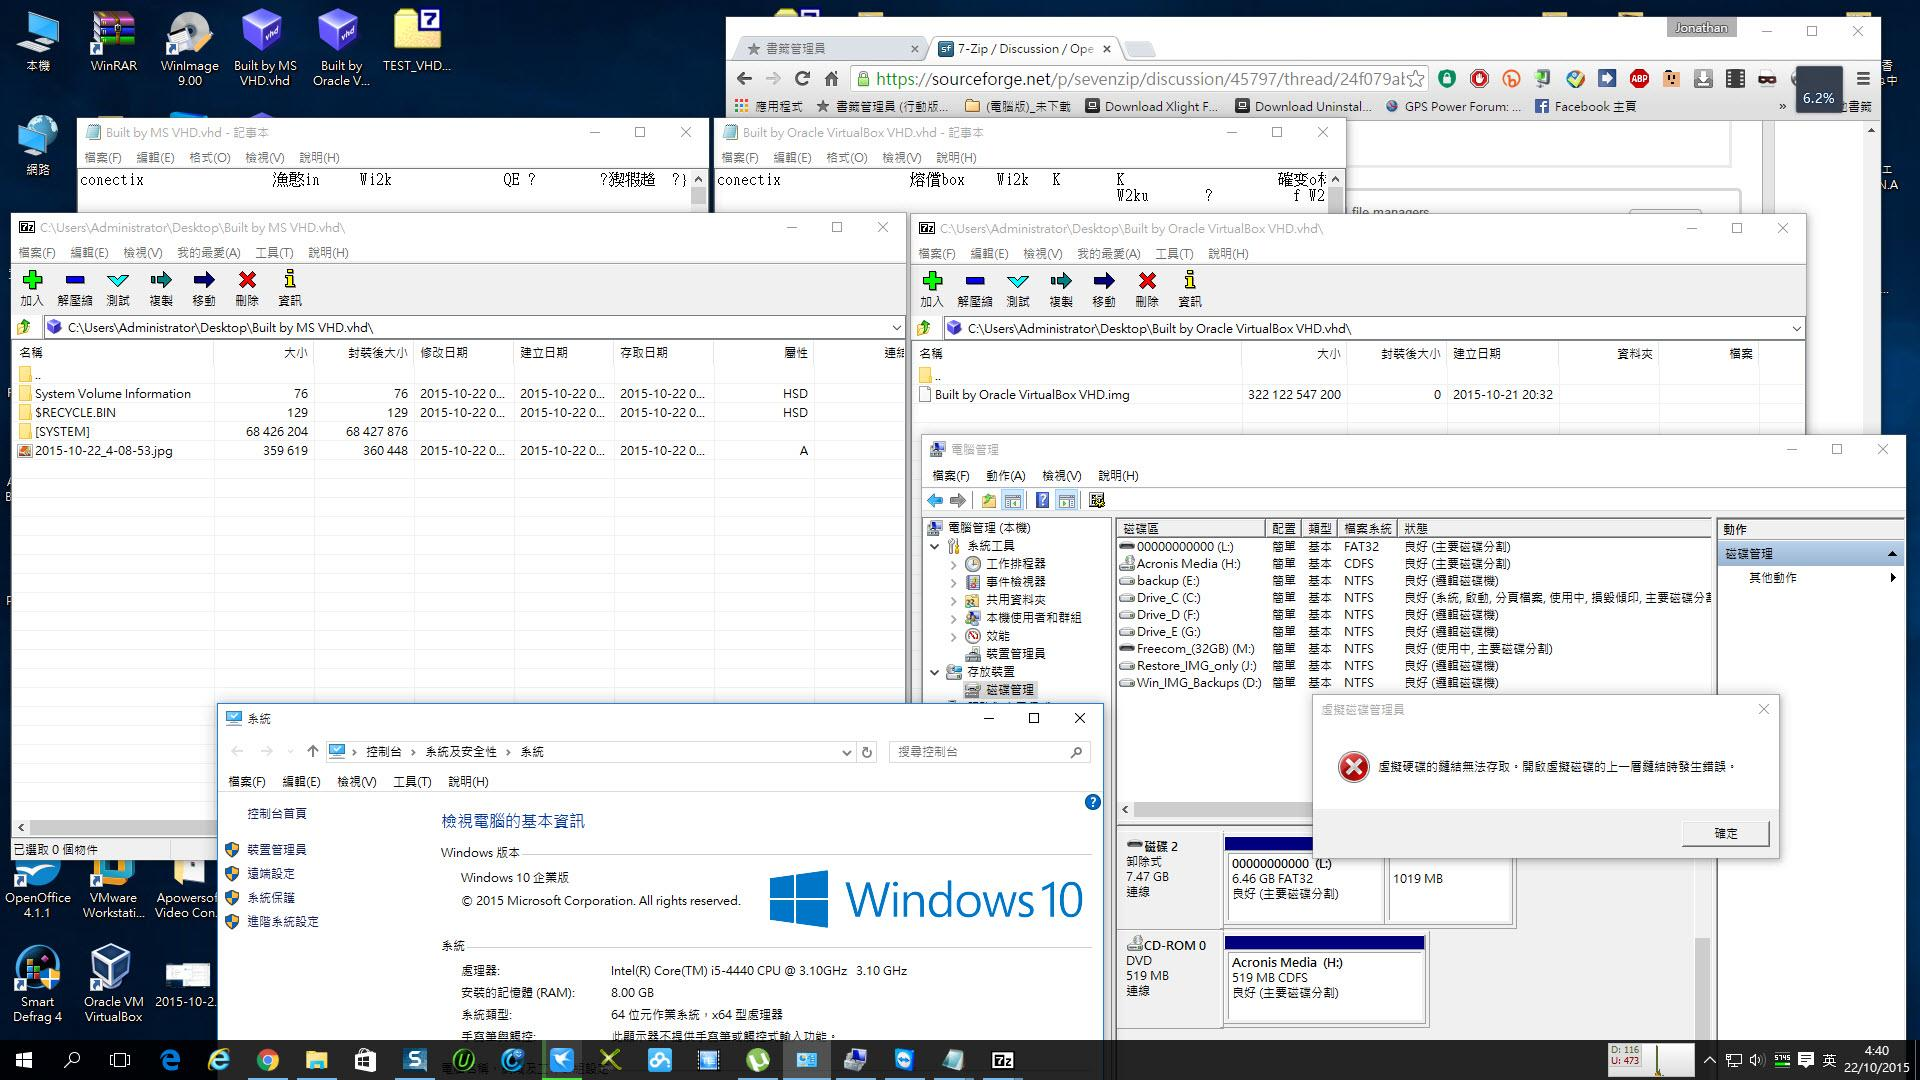 7-Zip / Discussion / Open Discussion:7-Zip 15 09 beta